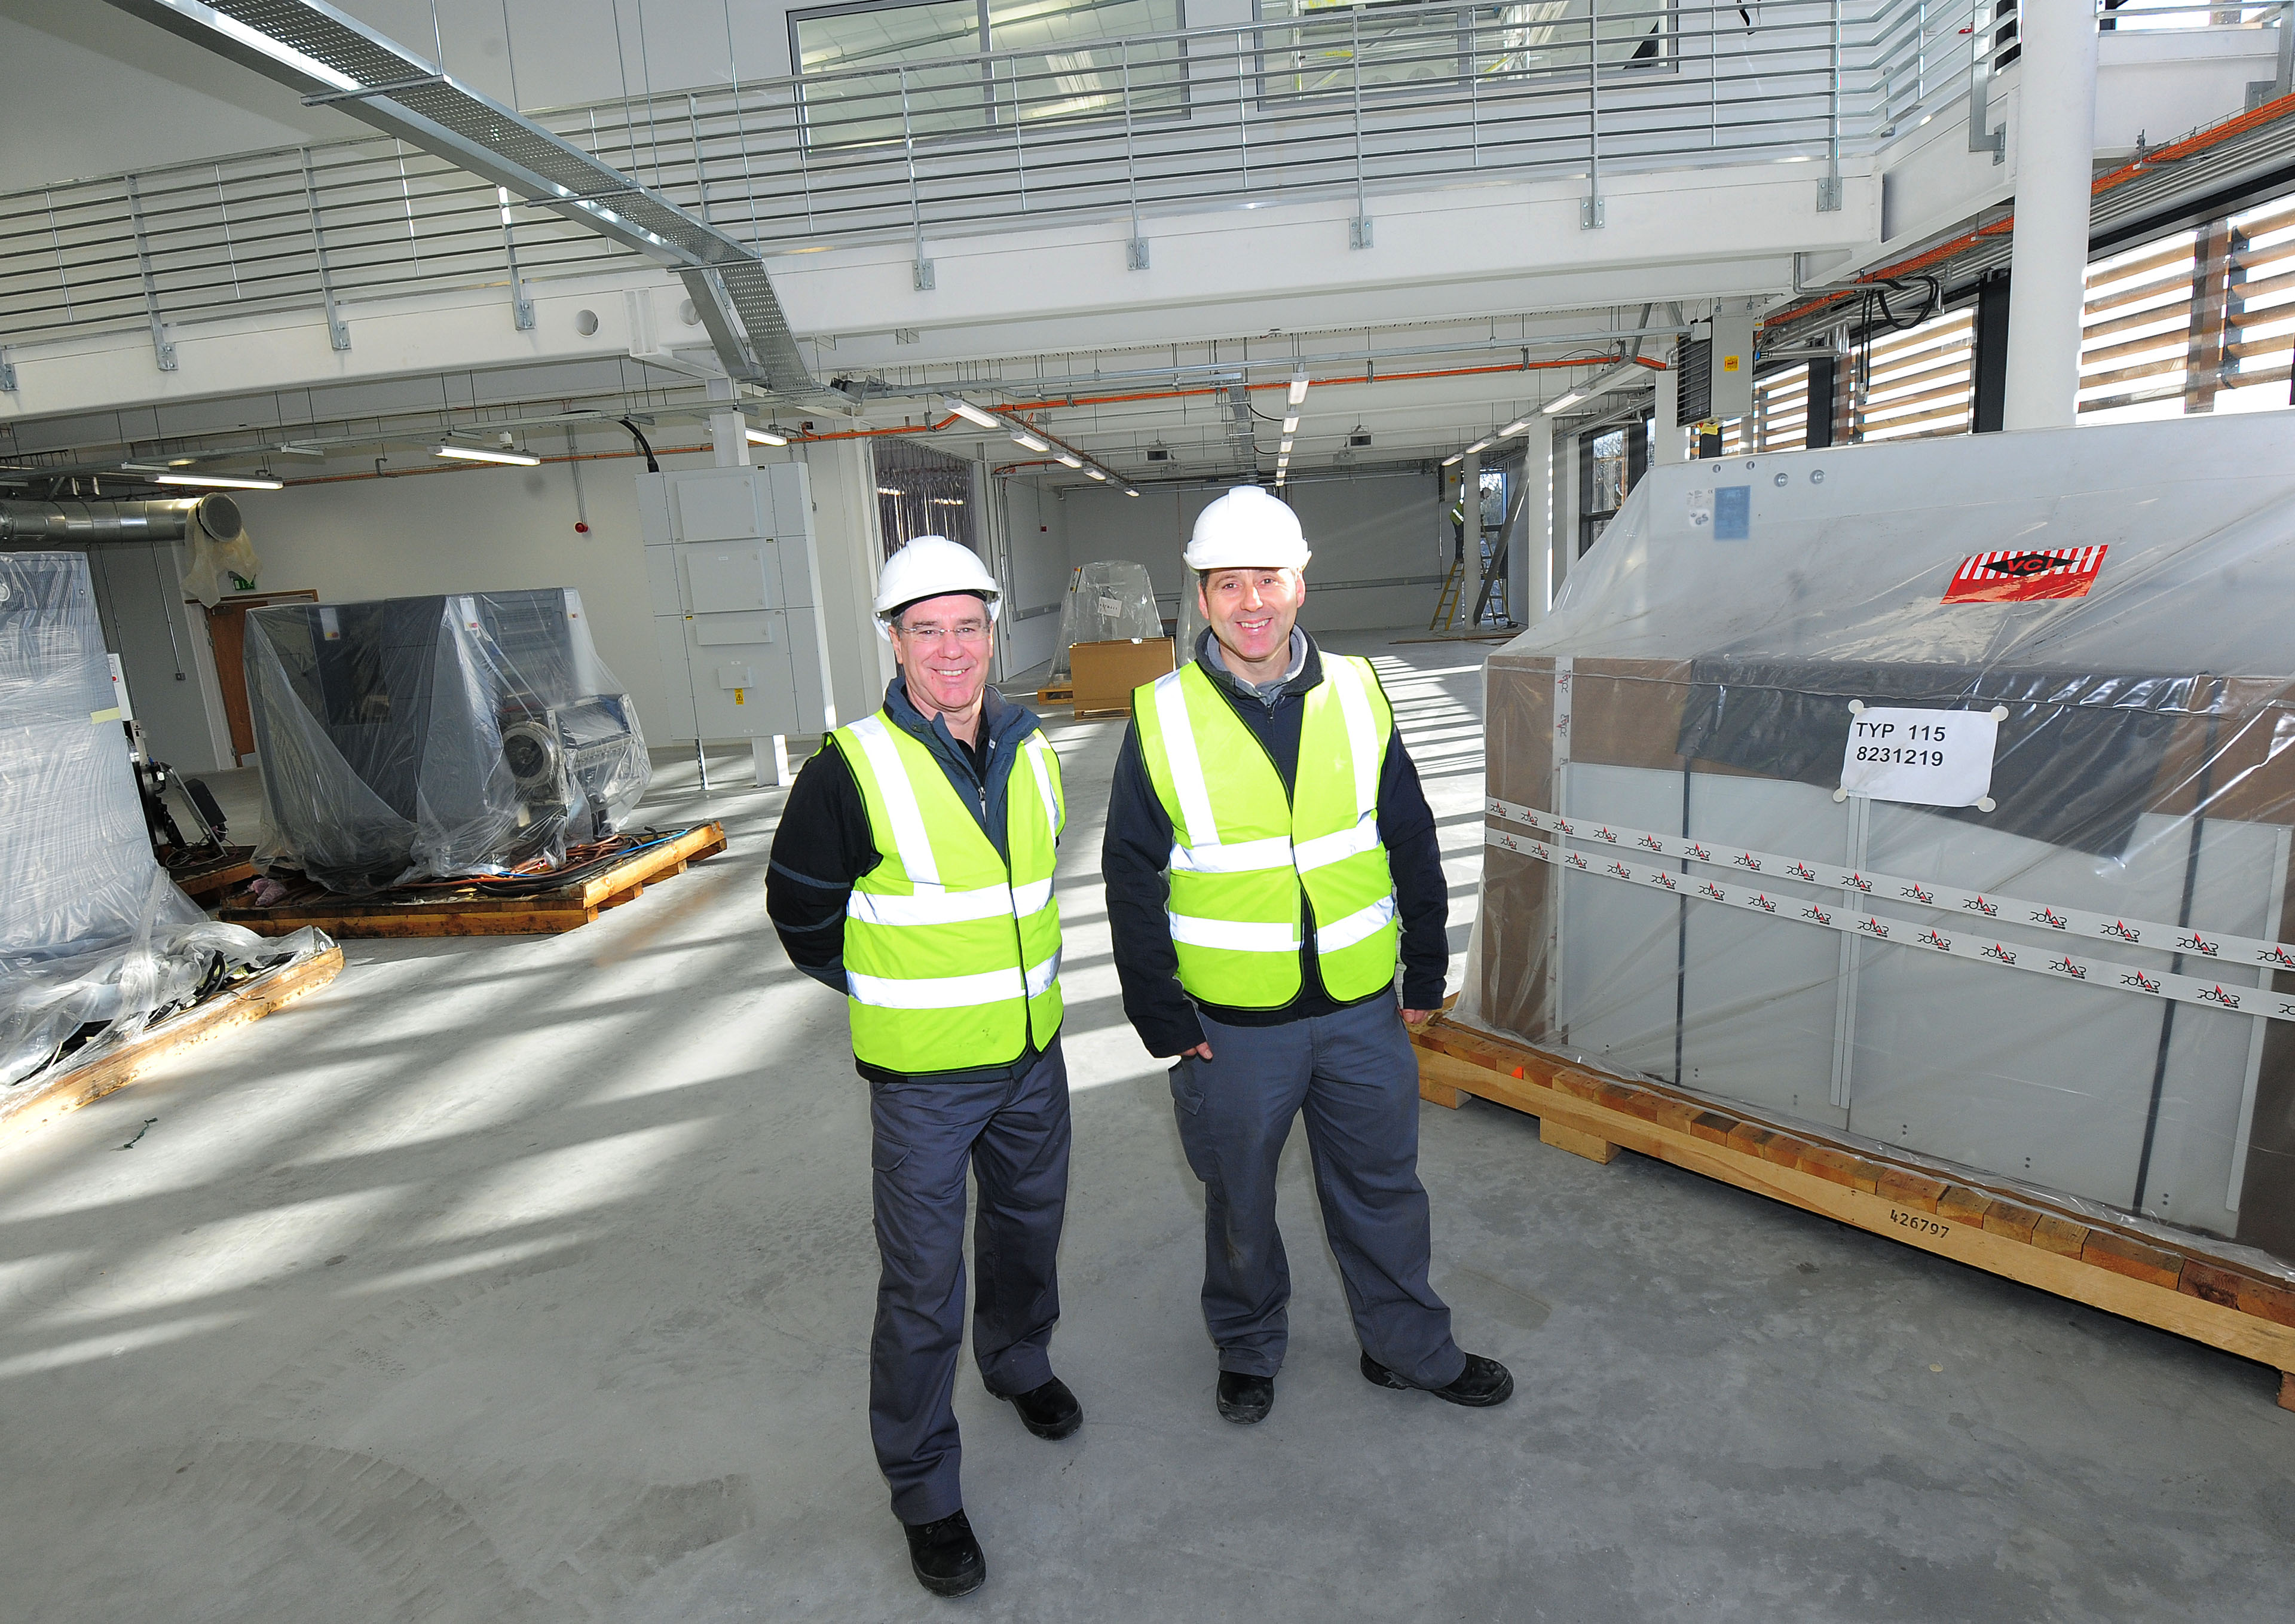 St Austell Printing Company's print manager, Steve Mattey (left) and bindery and dispatch manager, Anthony Tucker, with the new equipment